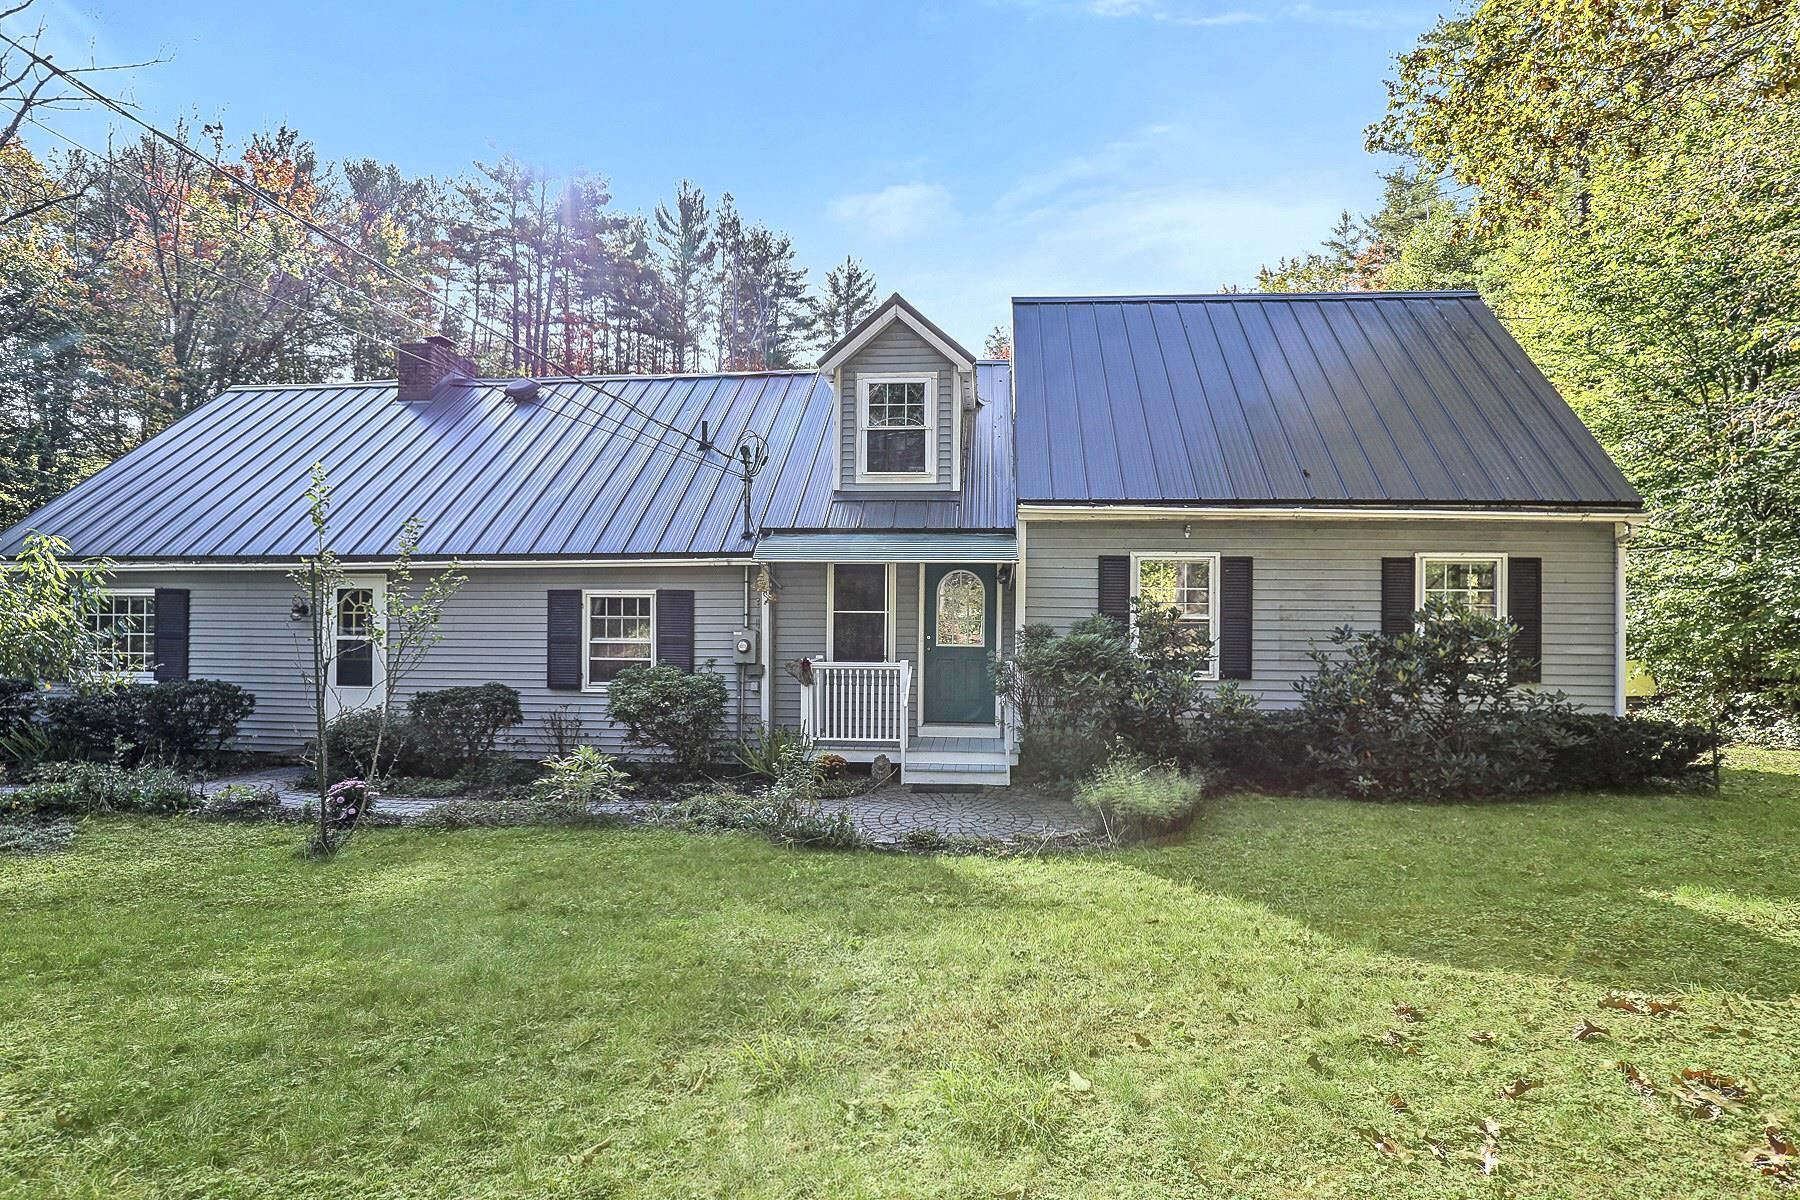 265 Page Road, Bow, NH 03304 - MLS#: 4886721